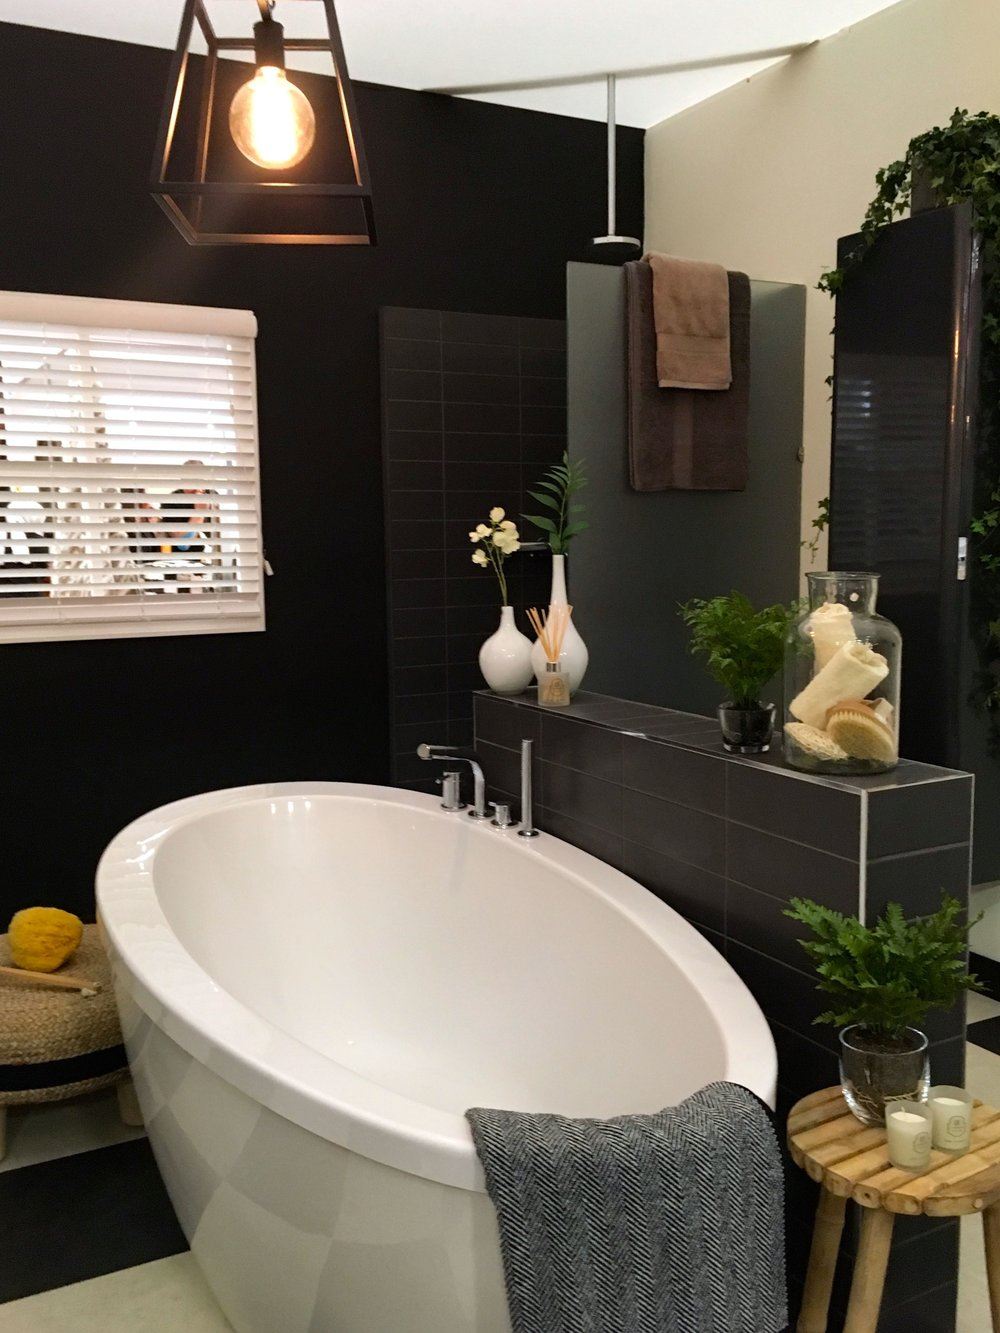 the shower cubicle in the corner of the bathroom room set at the Ideal Home show